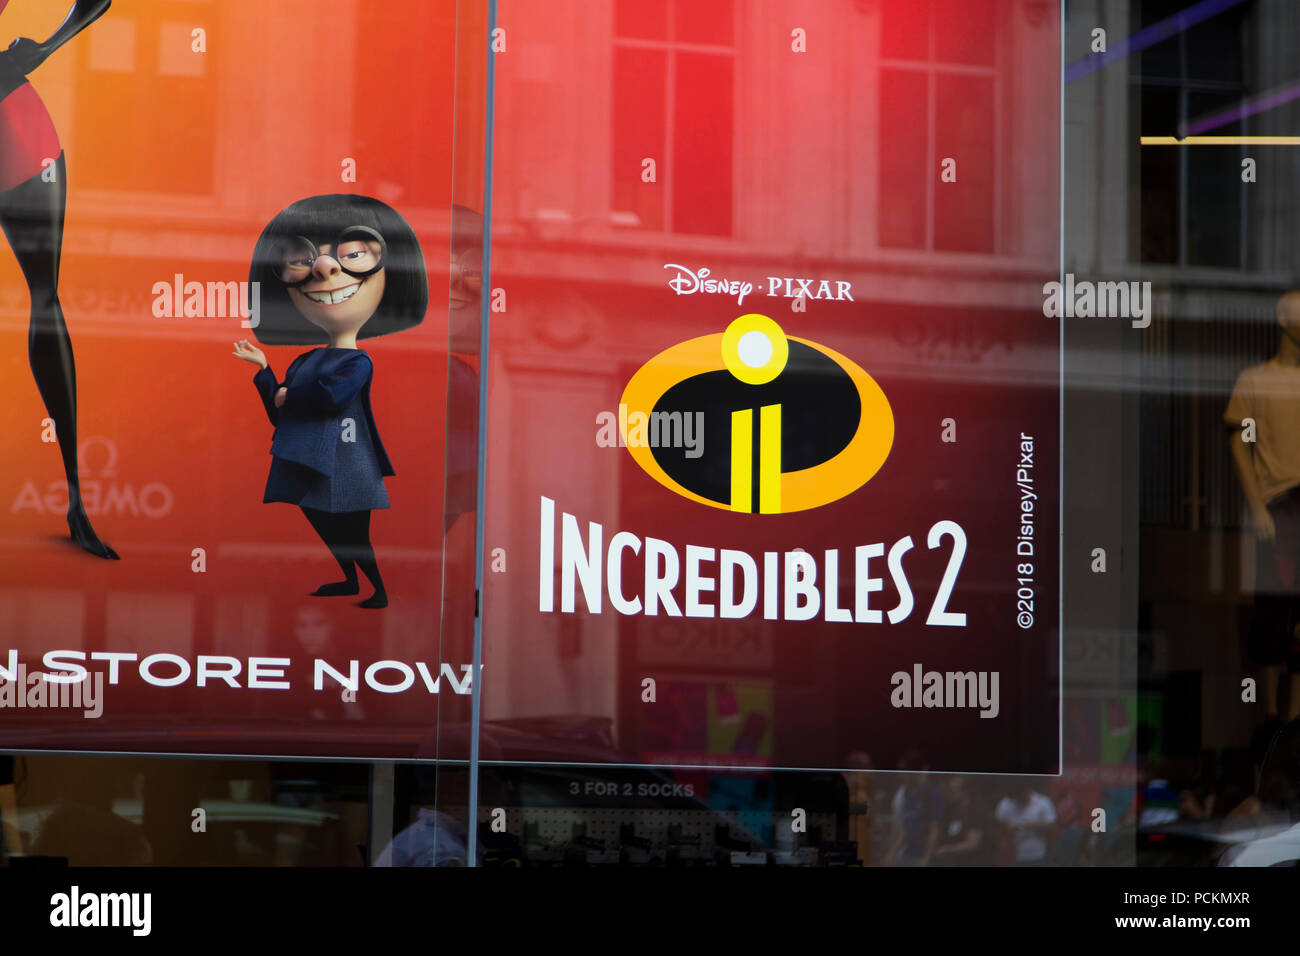 London Uk July 31th 2018 Movie Poster For The Incredibles 2 Film